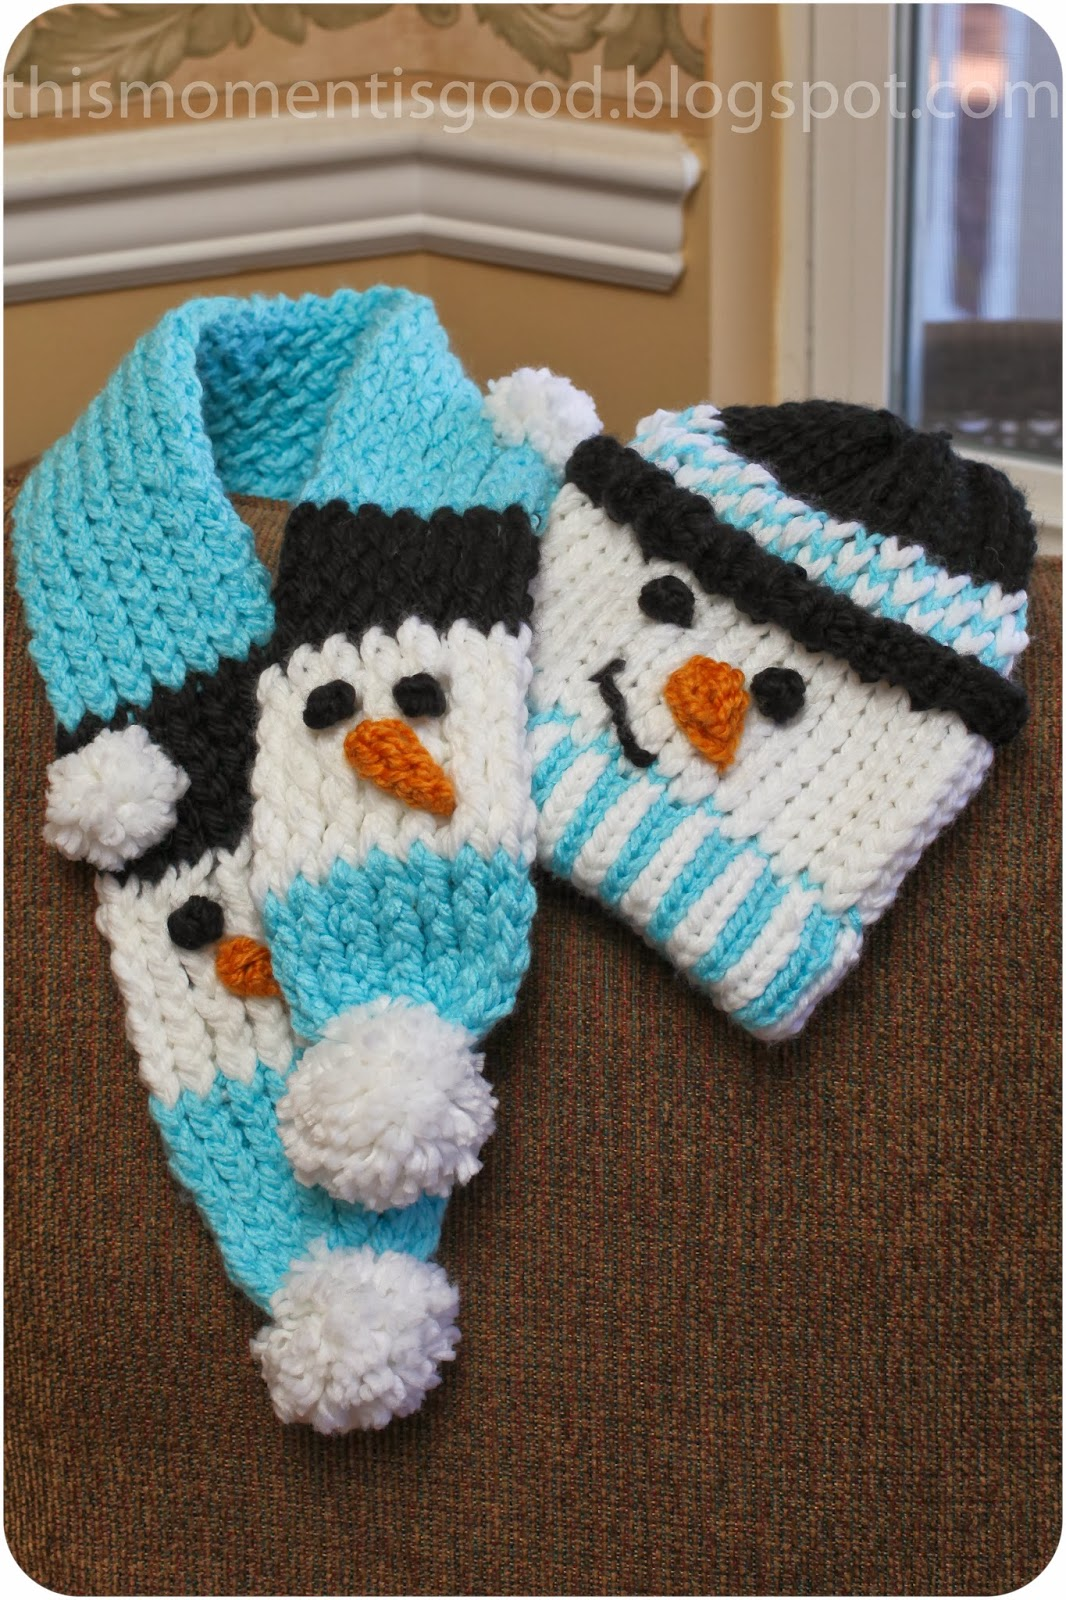 Knitting Ideas : Loom knit snowman scarf knitting by this moment is